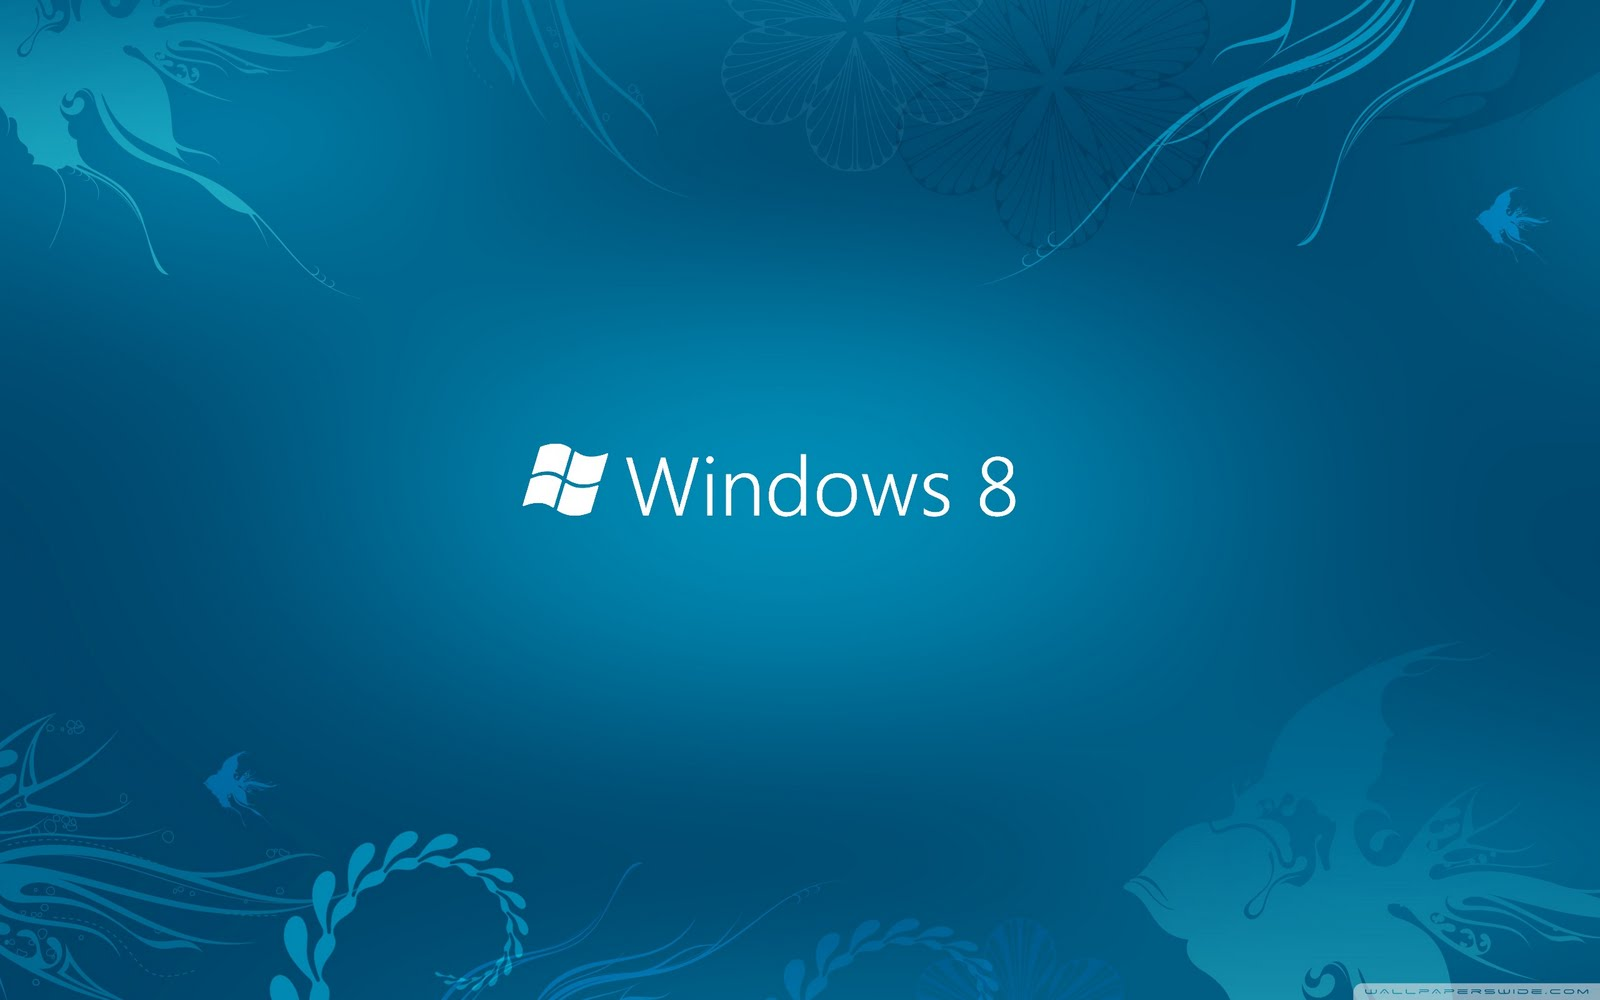 Windows 8 HD Wallpapers - HD Wallpapers